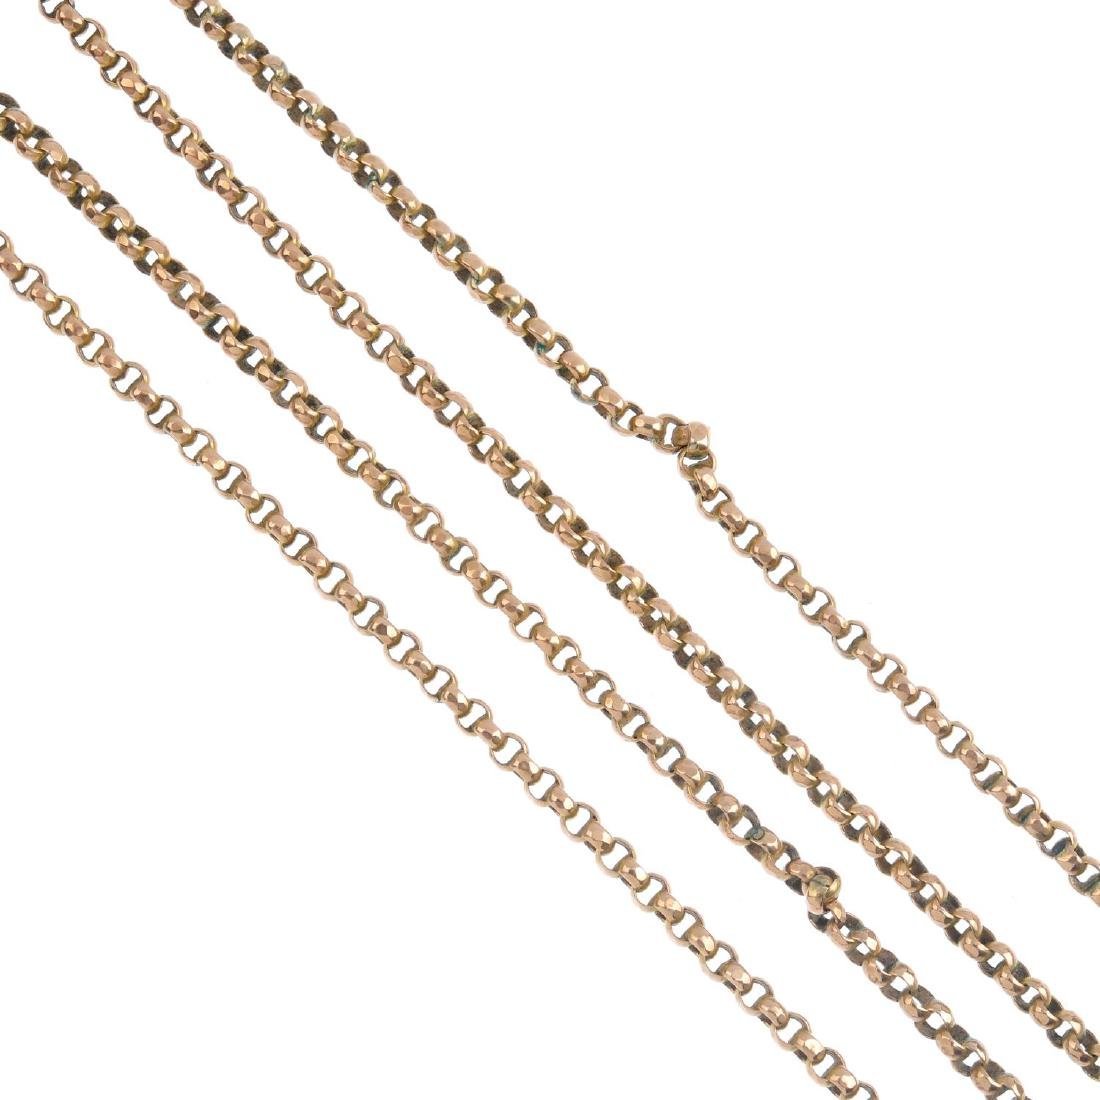 An early 20th century 9ct gold longuard chain. Designed